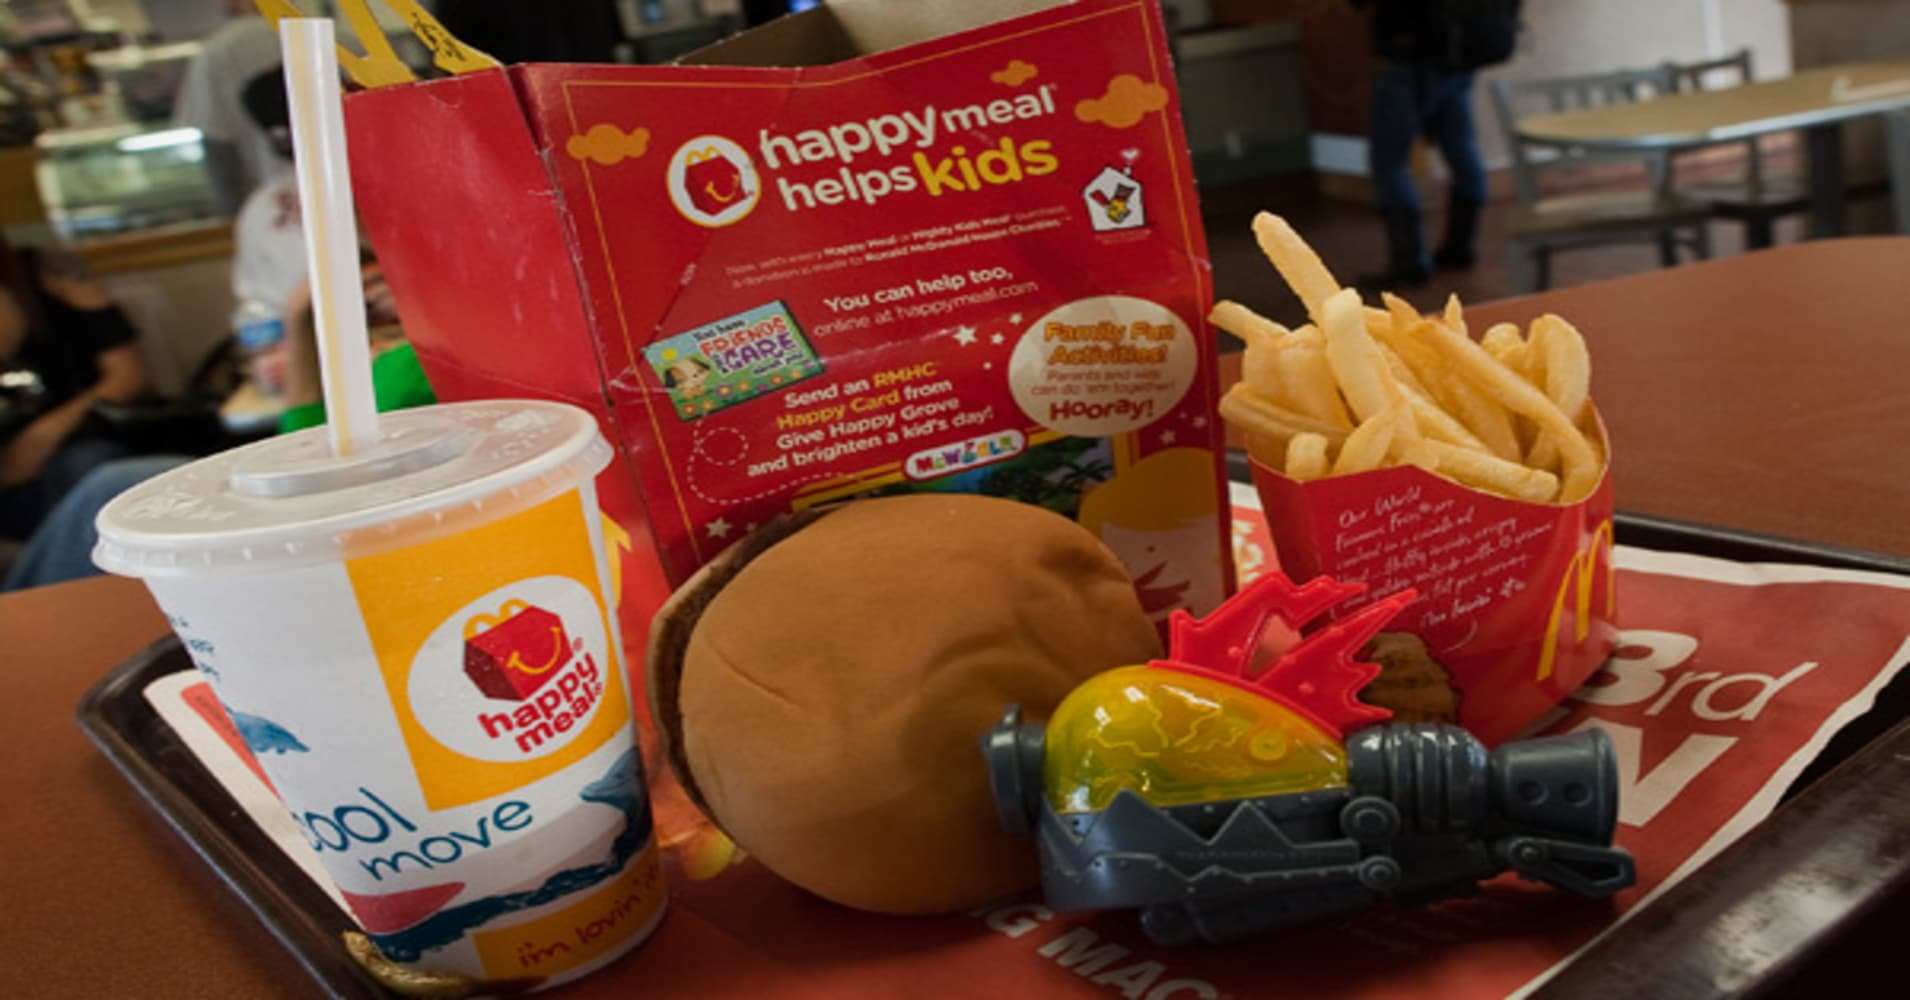 McDonalds cuts Happy Meal from 1 2 3 menu recommendations